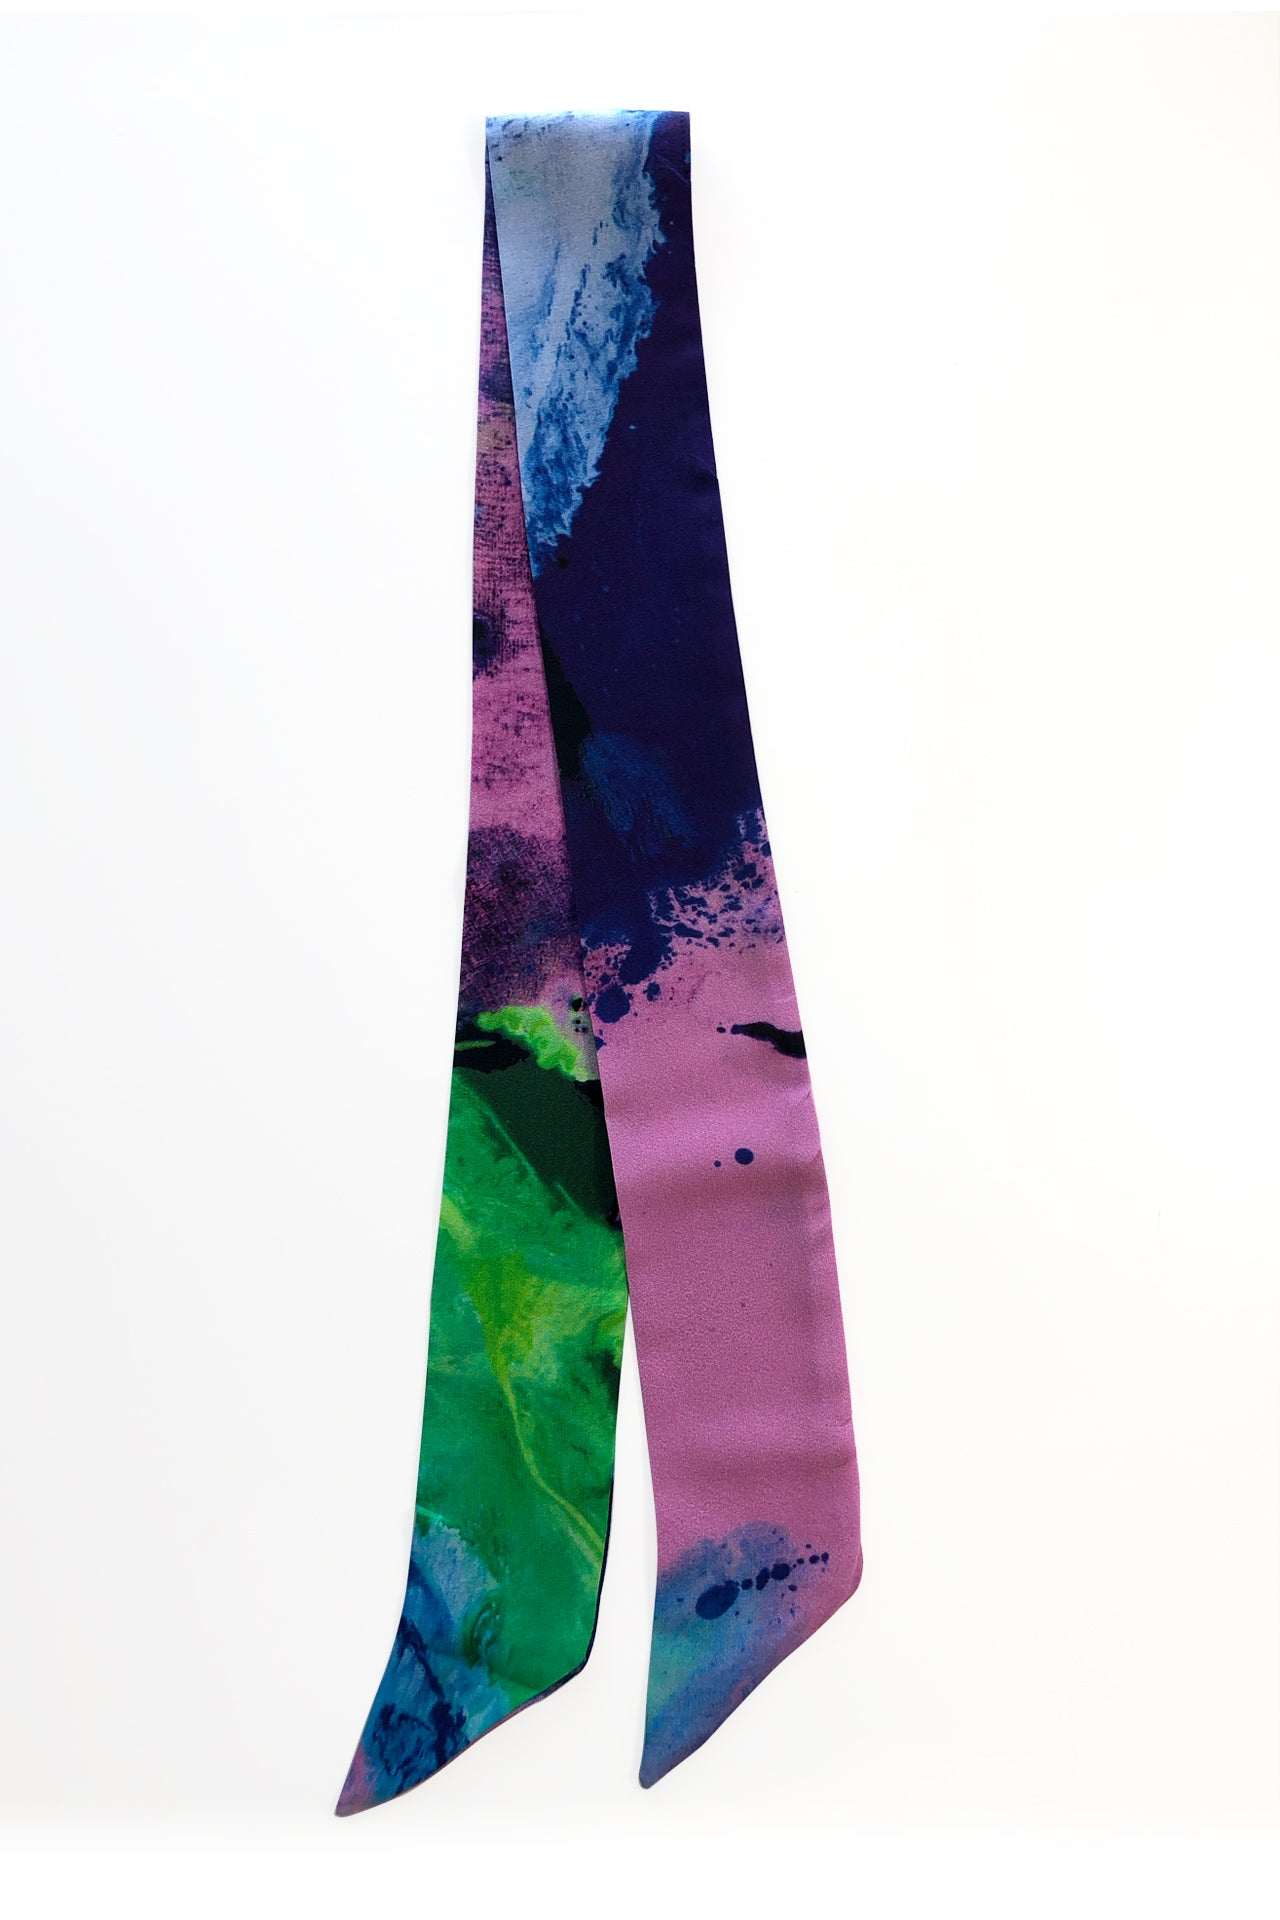 Bow Silk Scarf - Lila Green Print Bow Silks Scarves - artTECA